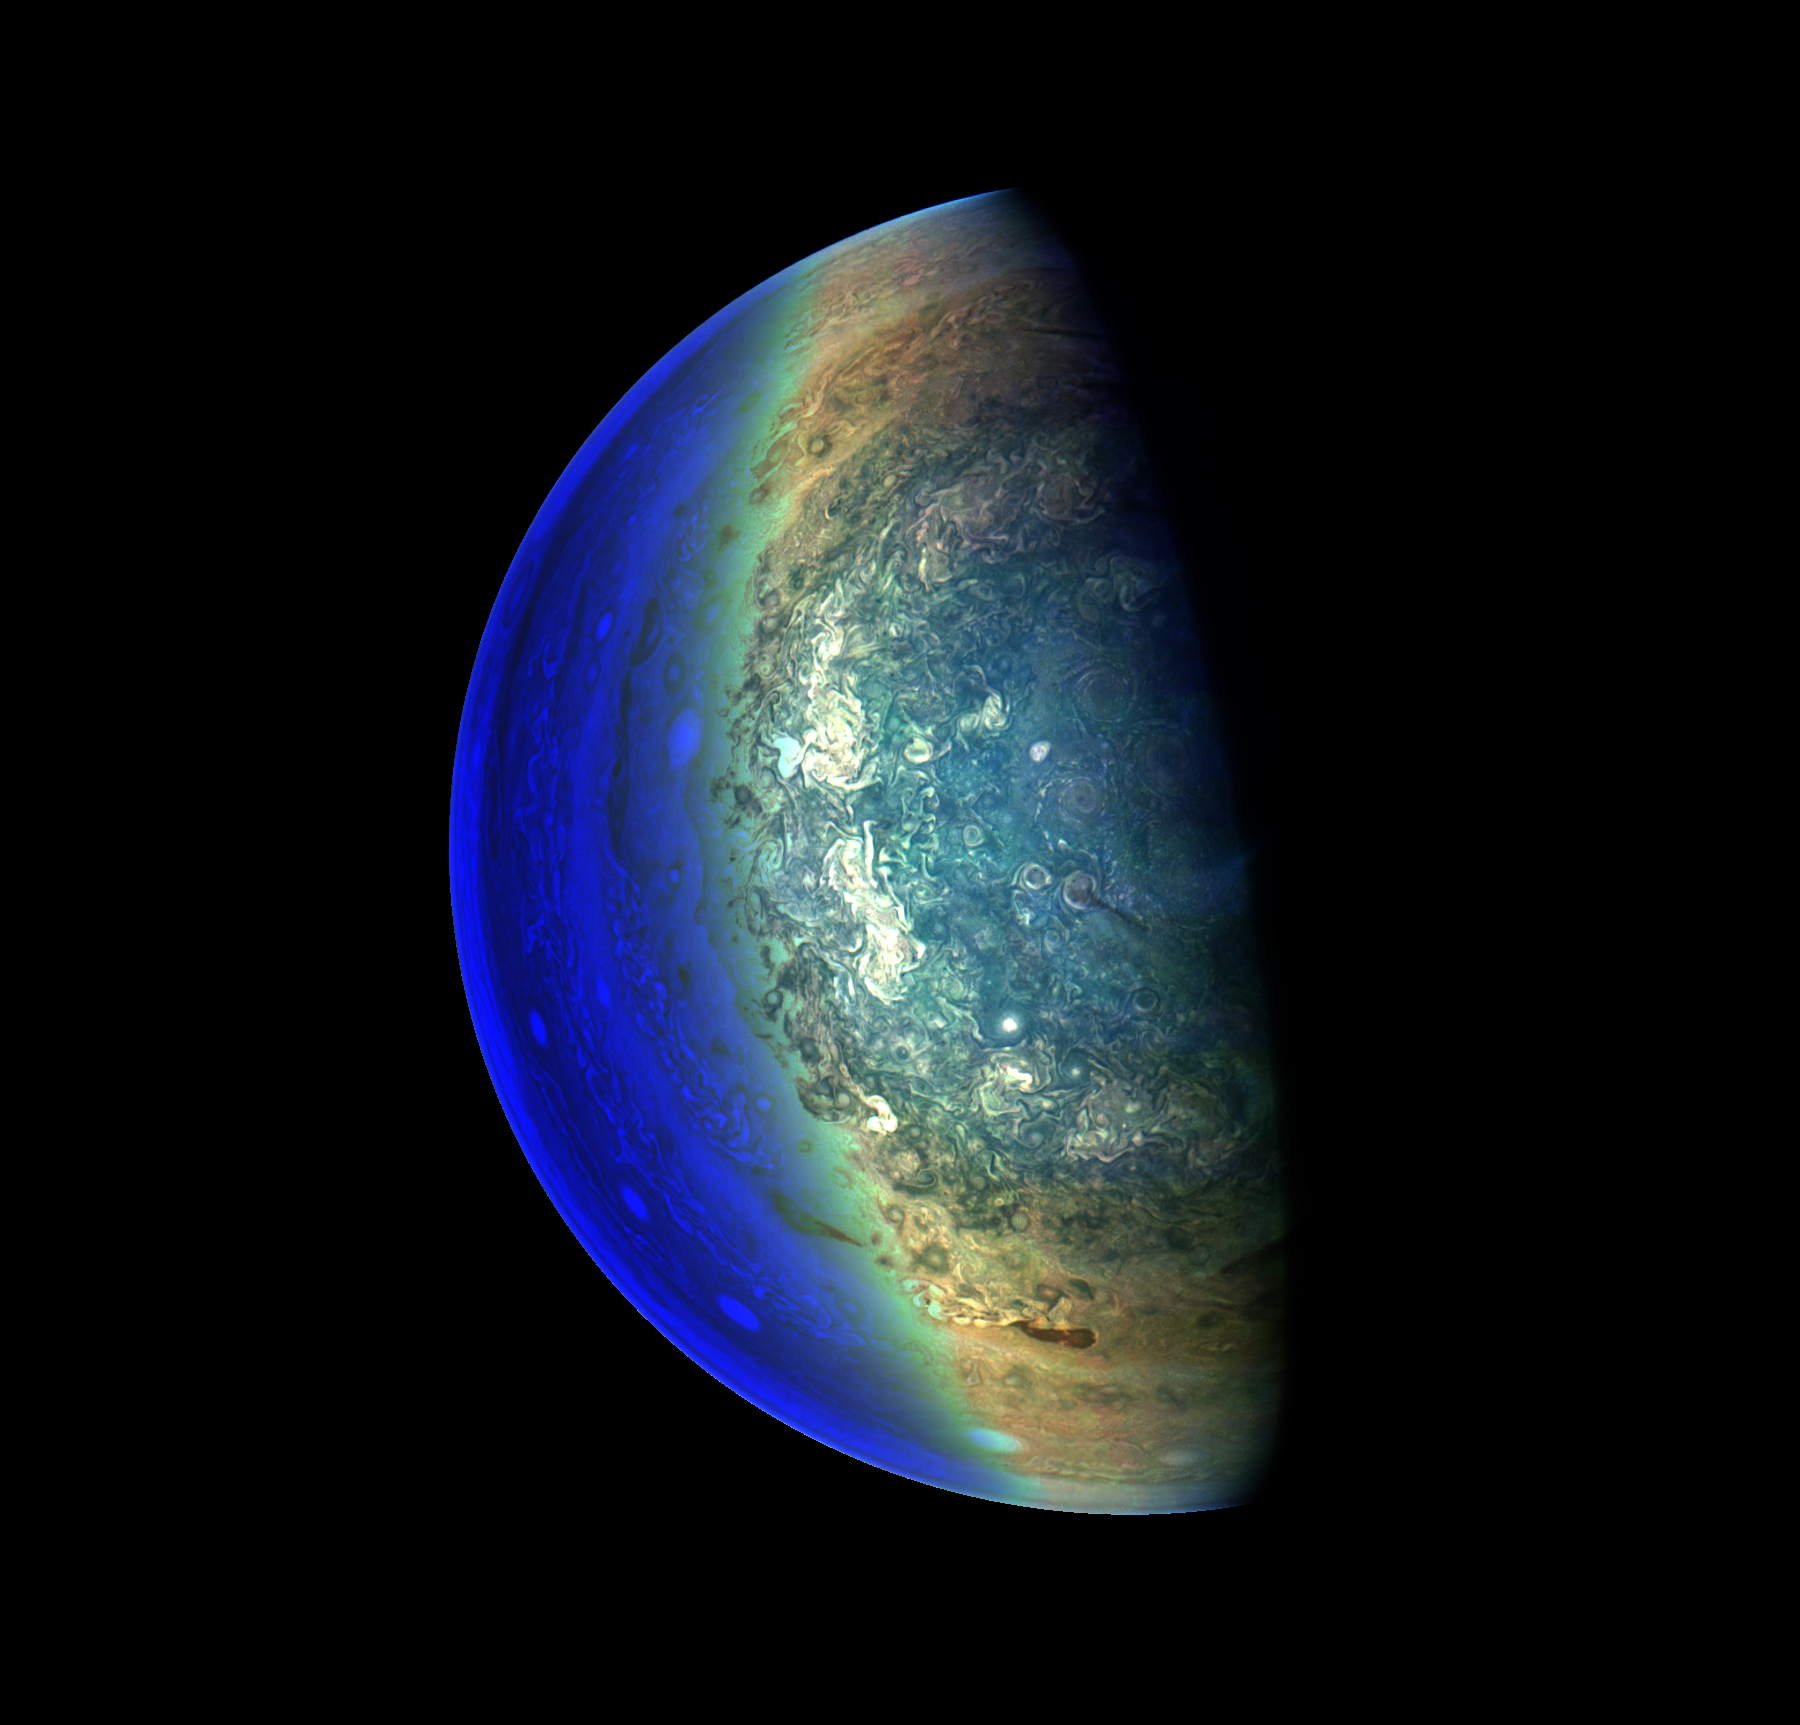 Colorful, enhanced image of Jupiter's swirling clouds.